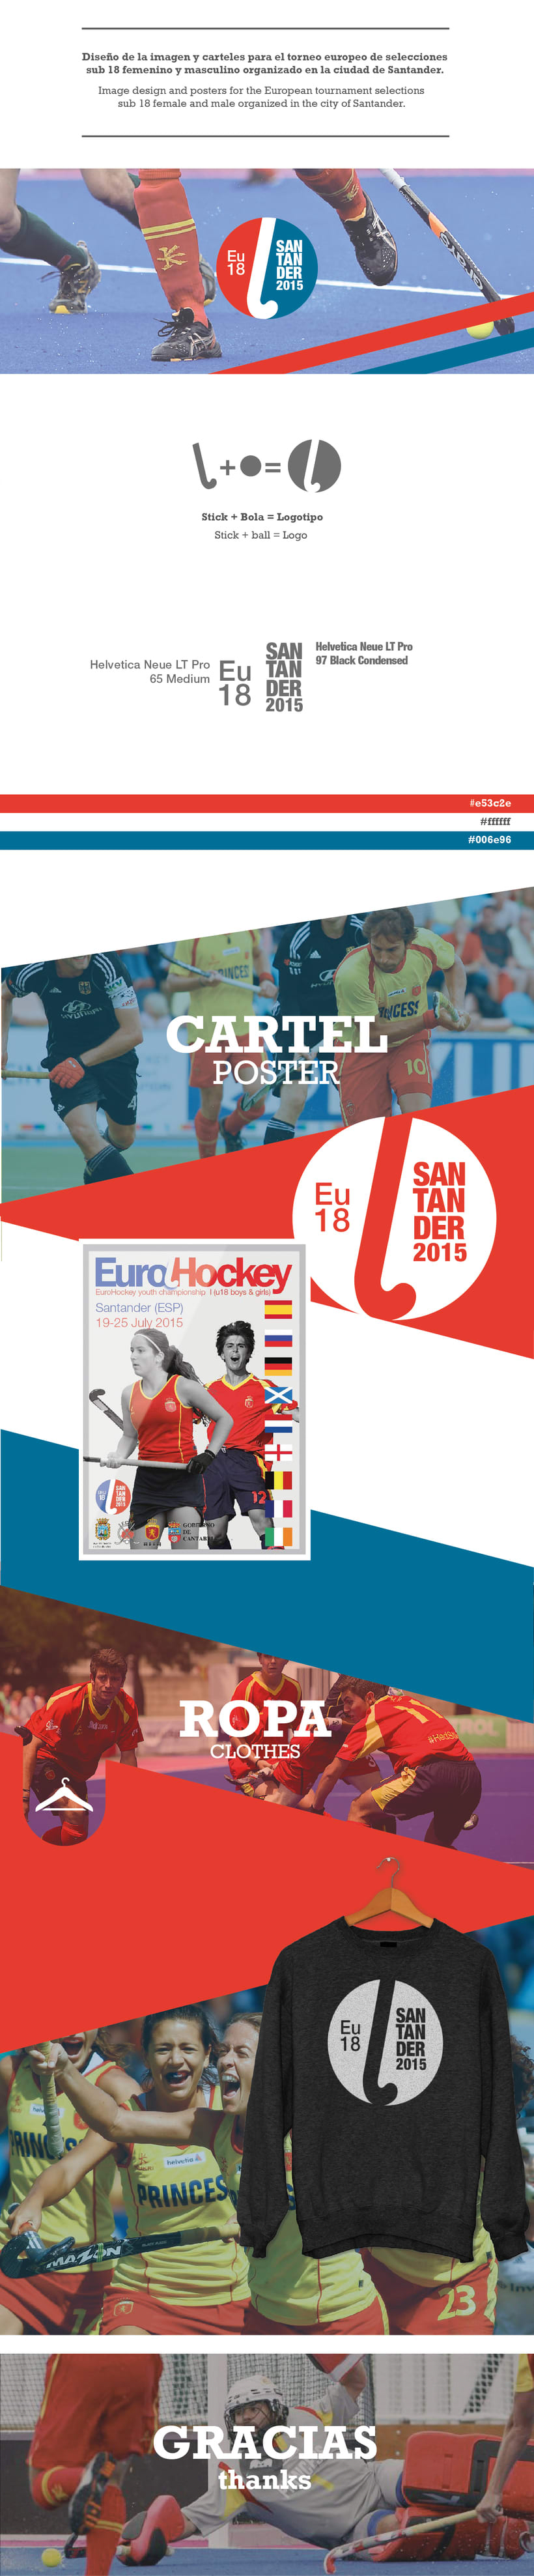 Hockey EU18 Santander -1